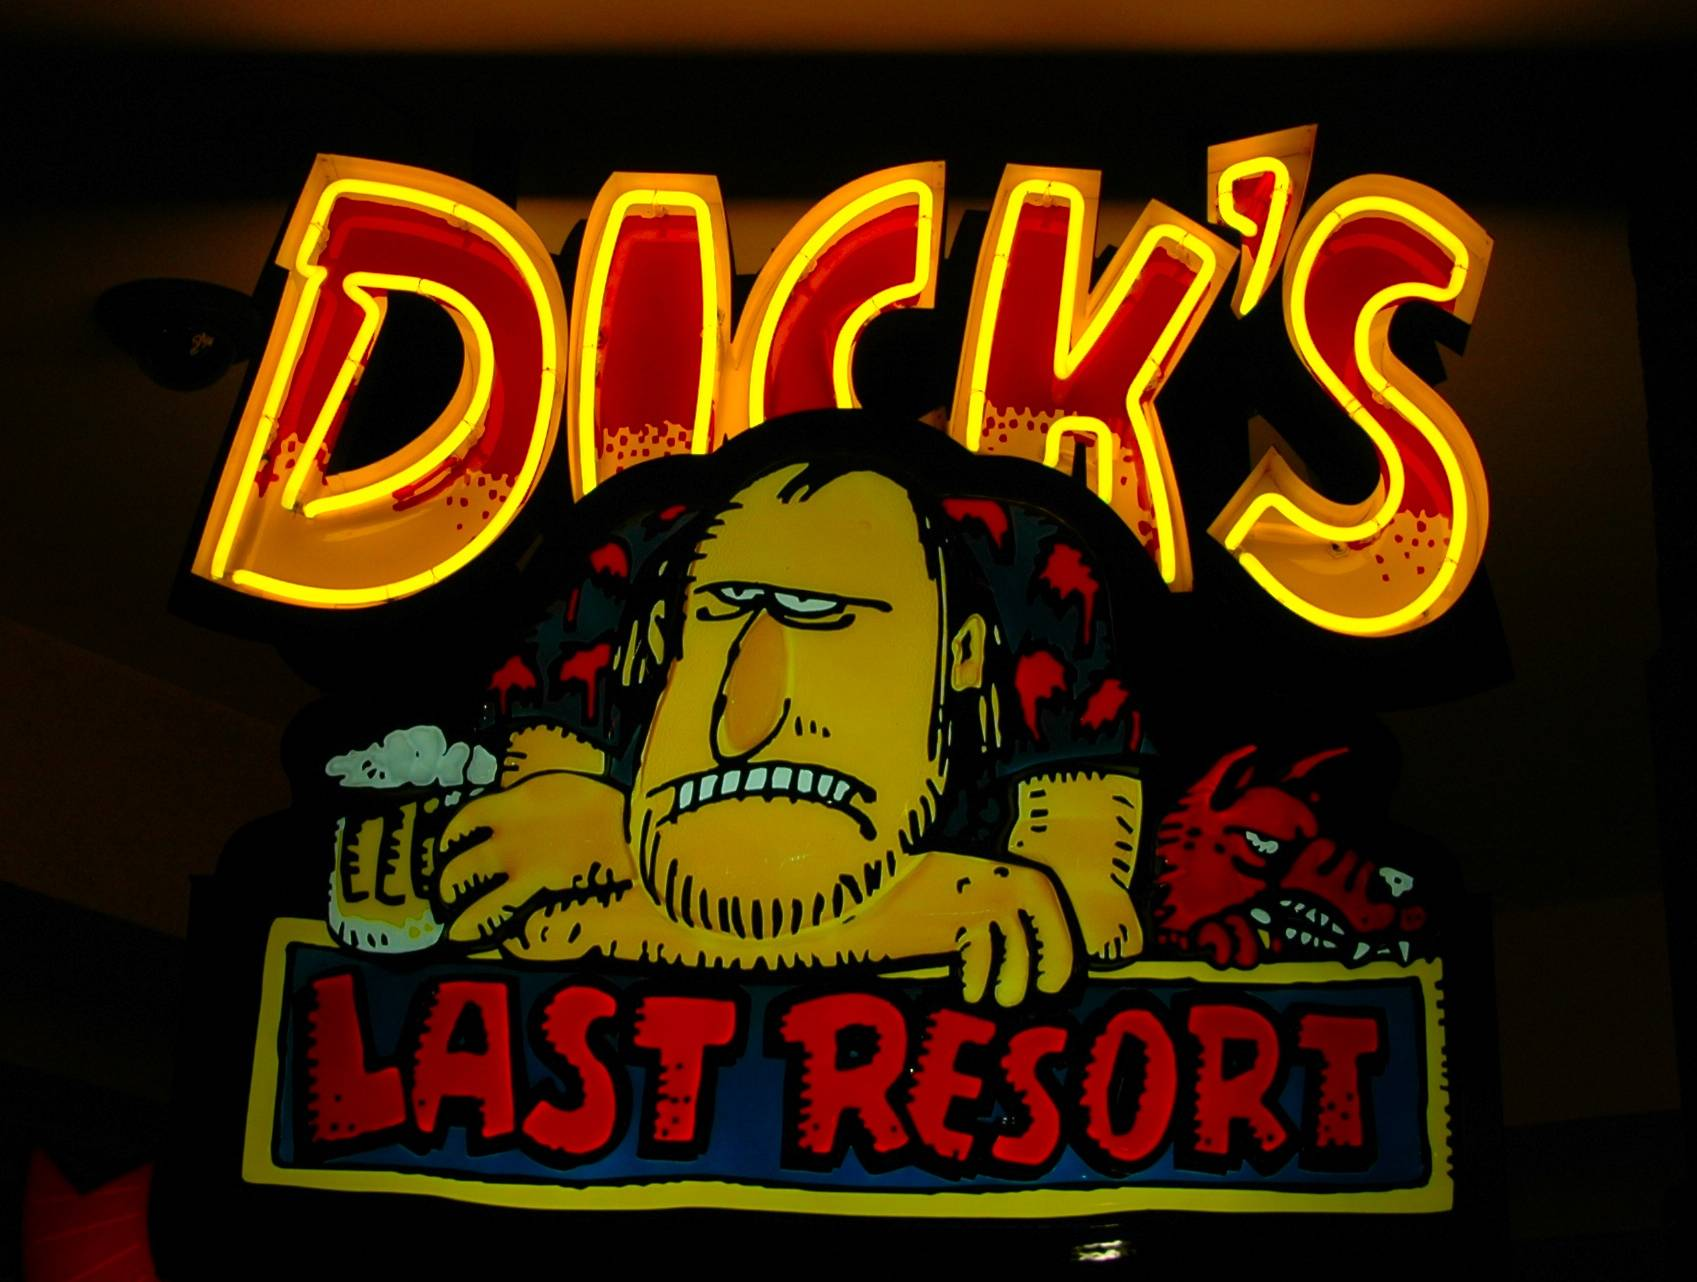 Dicks Last Resort dinner show.